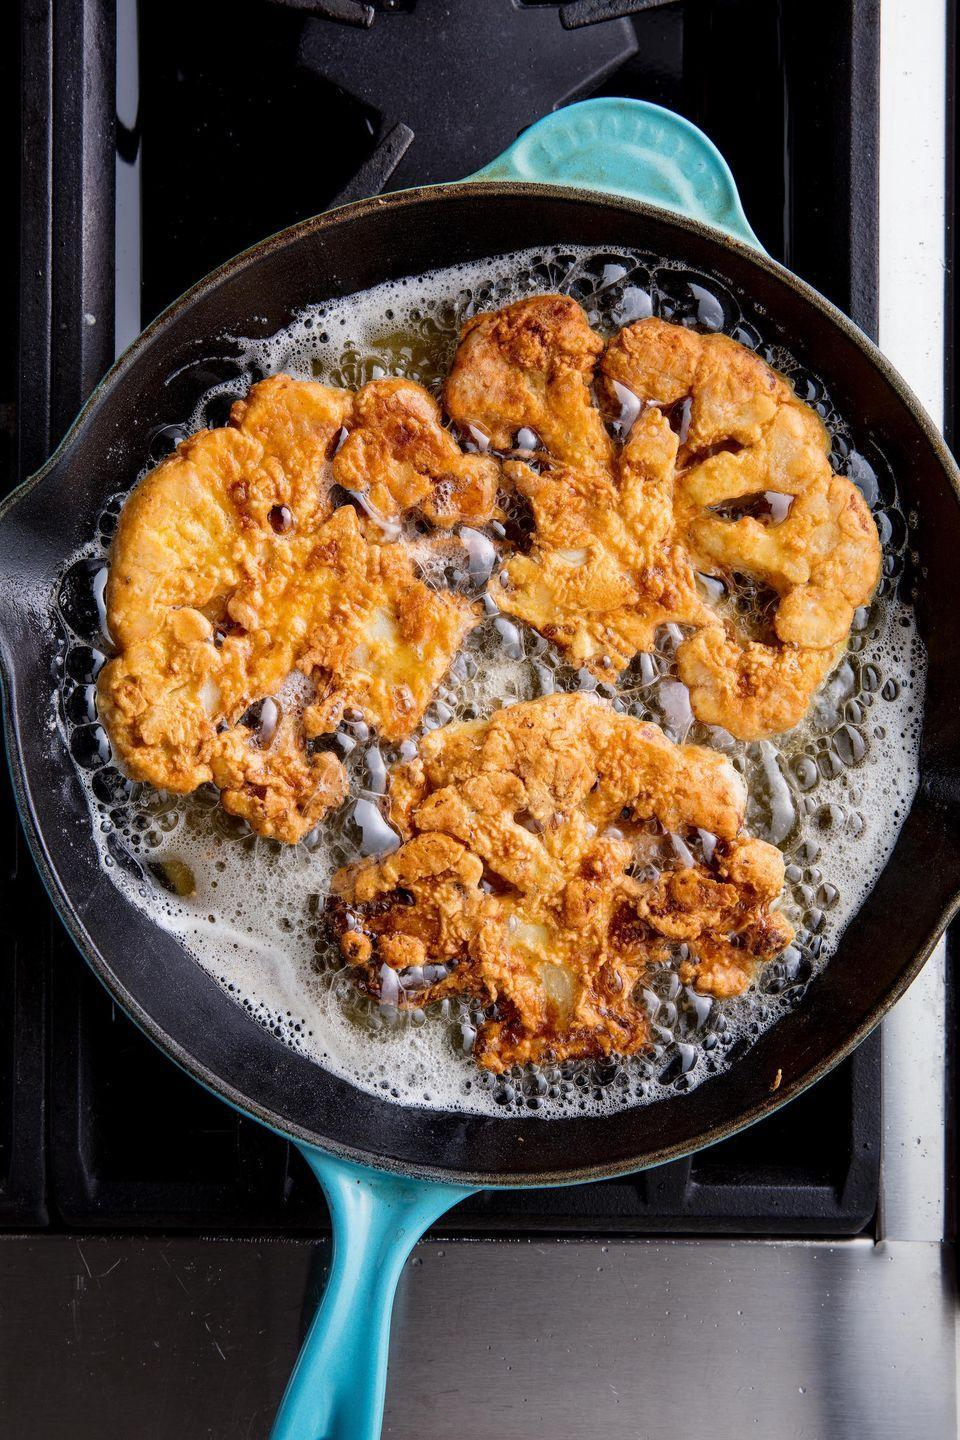 "<p>Don't worry, there's no chicken involved <a href=""https://www.delish.com/cooking/recipes/a47717/chicken-fried-cauliflower-recipe/"" rel=""nofollow noopener"" target=""_blank"" data-ylk=""slk:here"" class=""link rapid-noclick-resp"">here</a>.</p><p>Get the recipe from Delish.</p>"